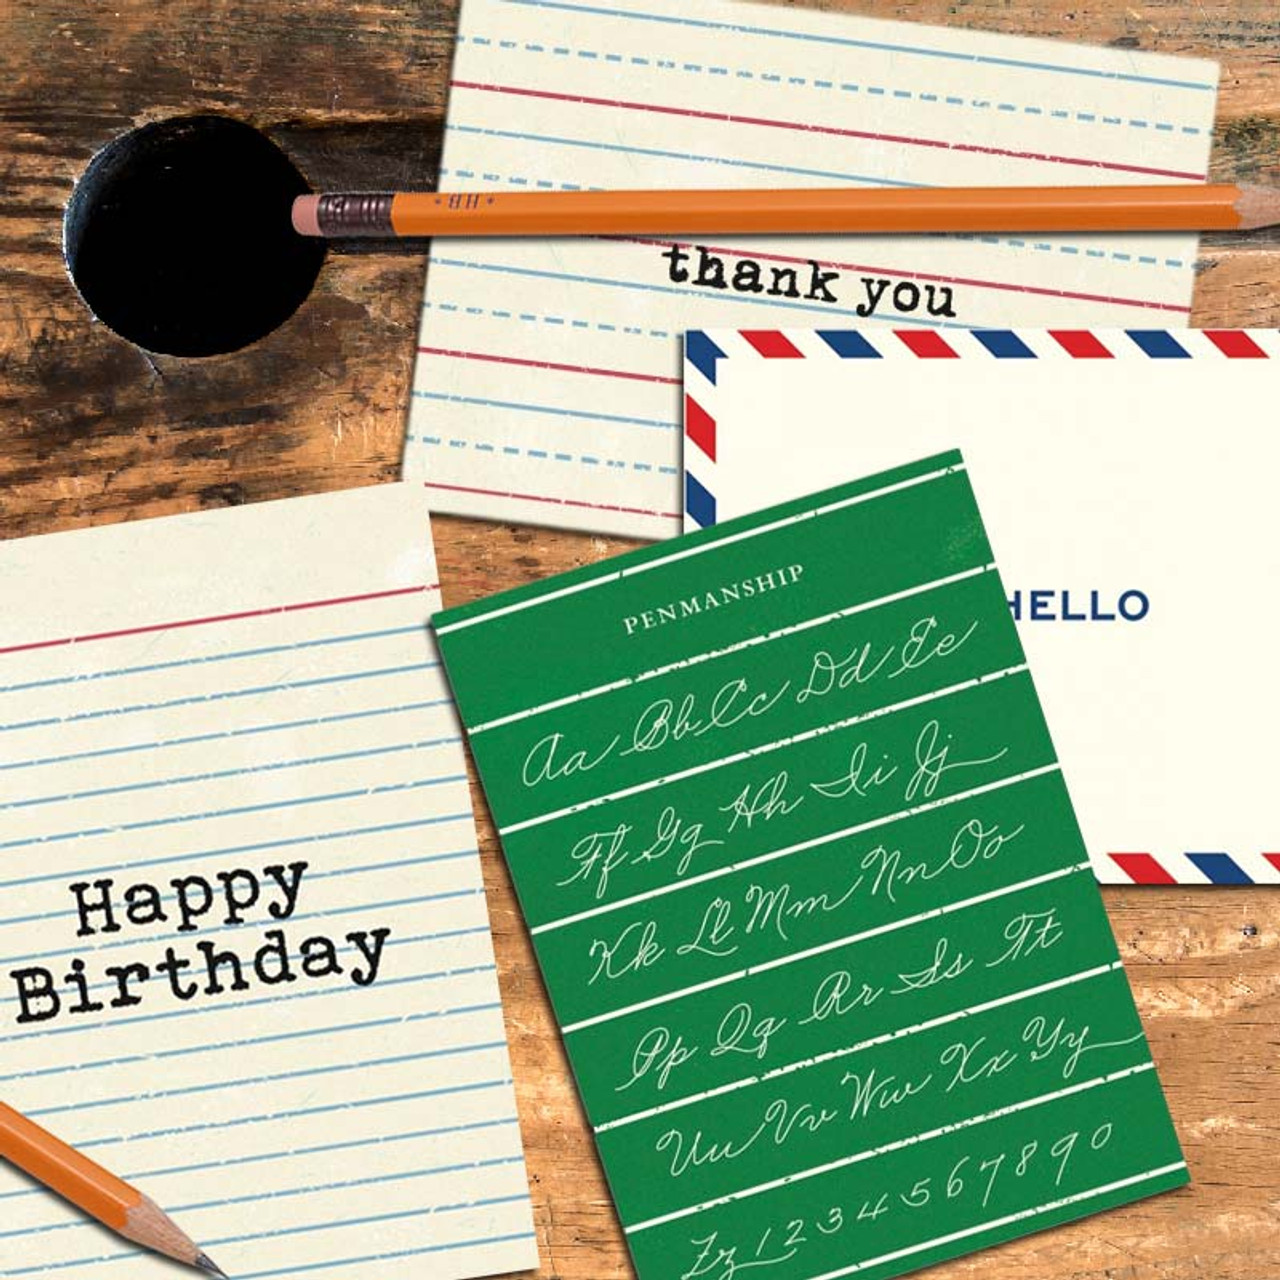 Greeting cards to give to teachers! Fun retro designs.